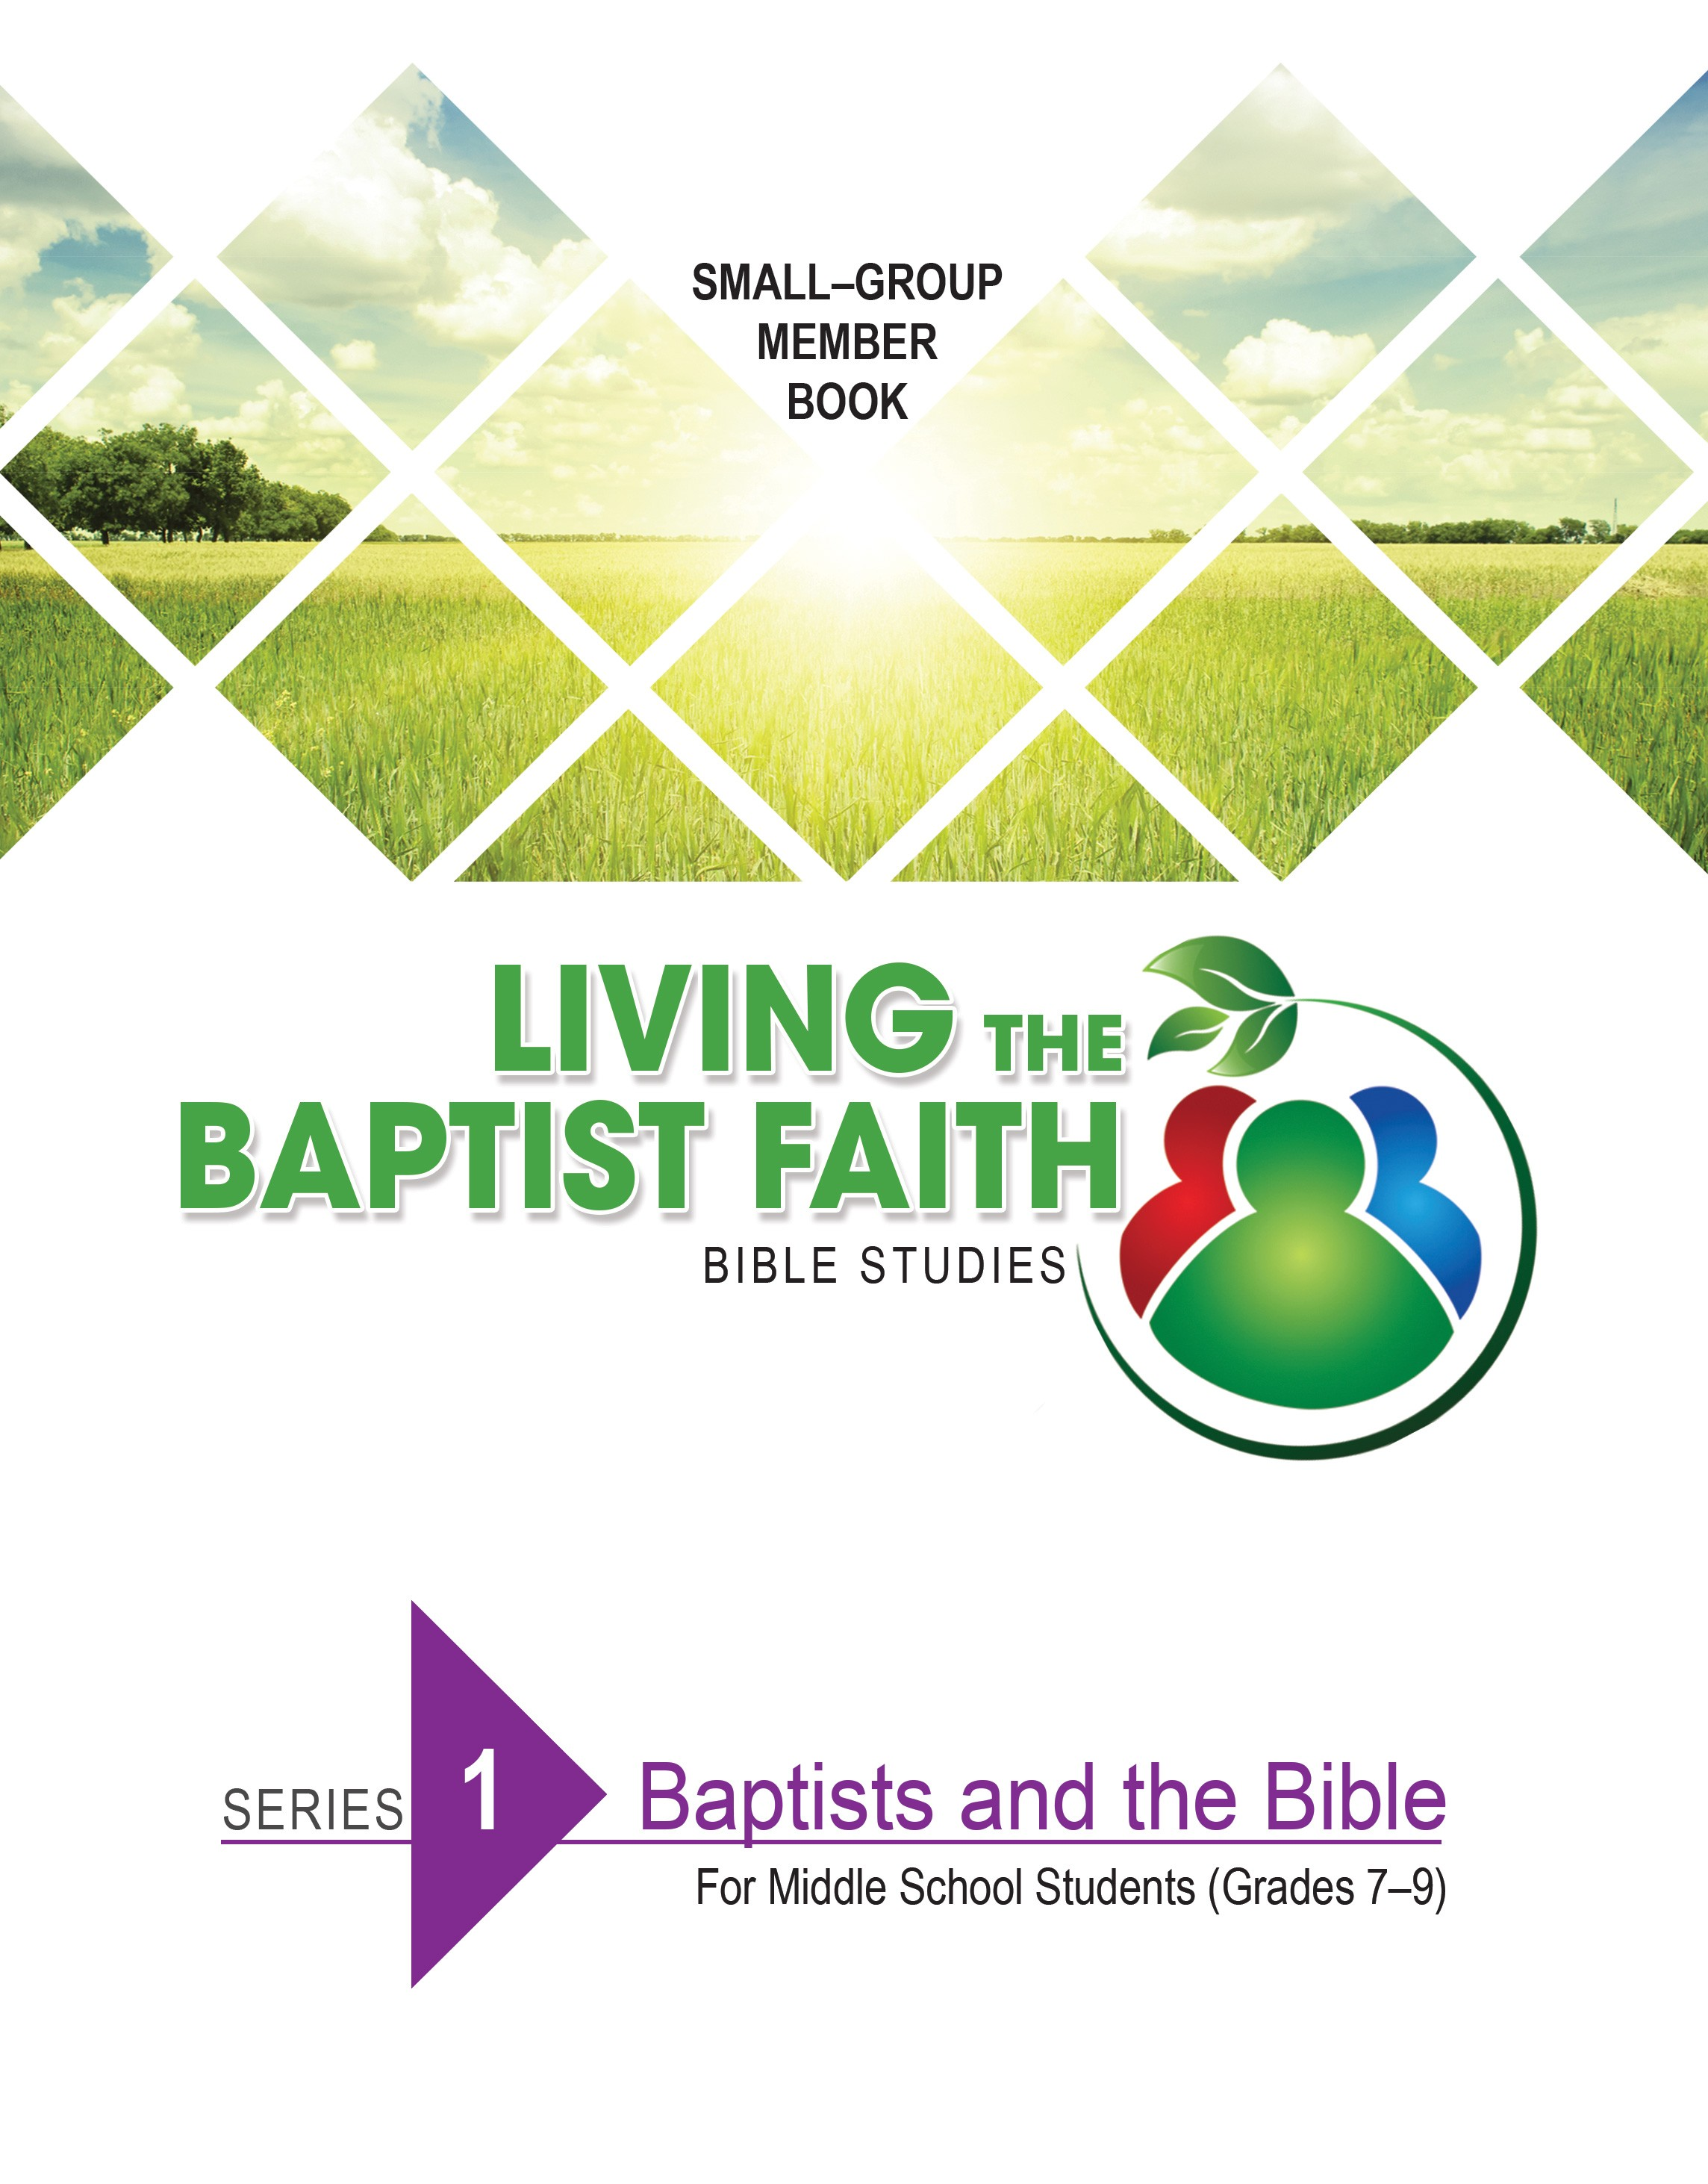 Series 1: Baptists and the Bible (for Middle School Students)